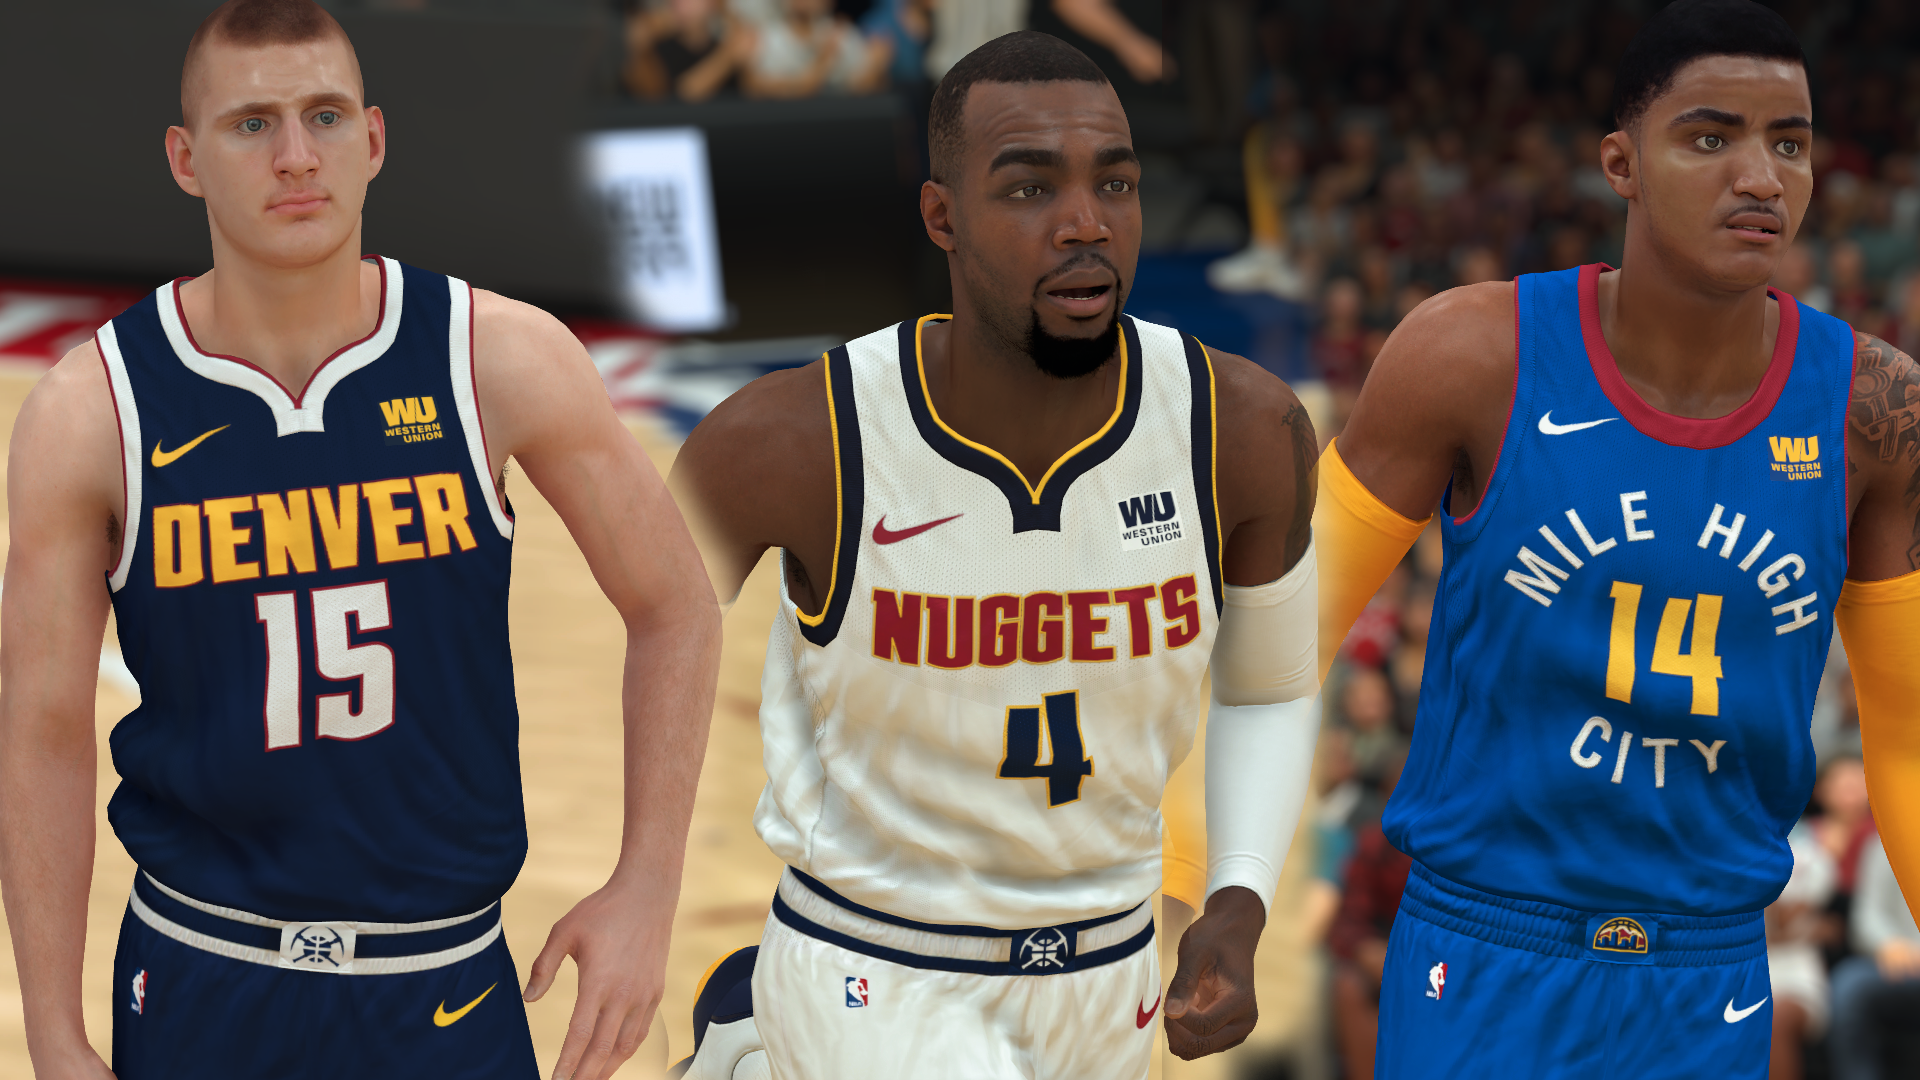 Denver Nuggets Jersey (pinoy21)